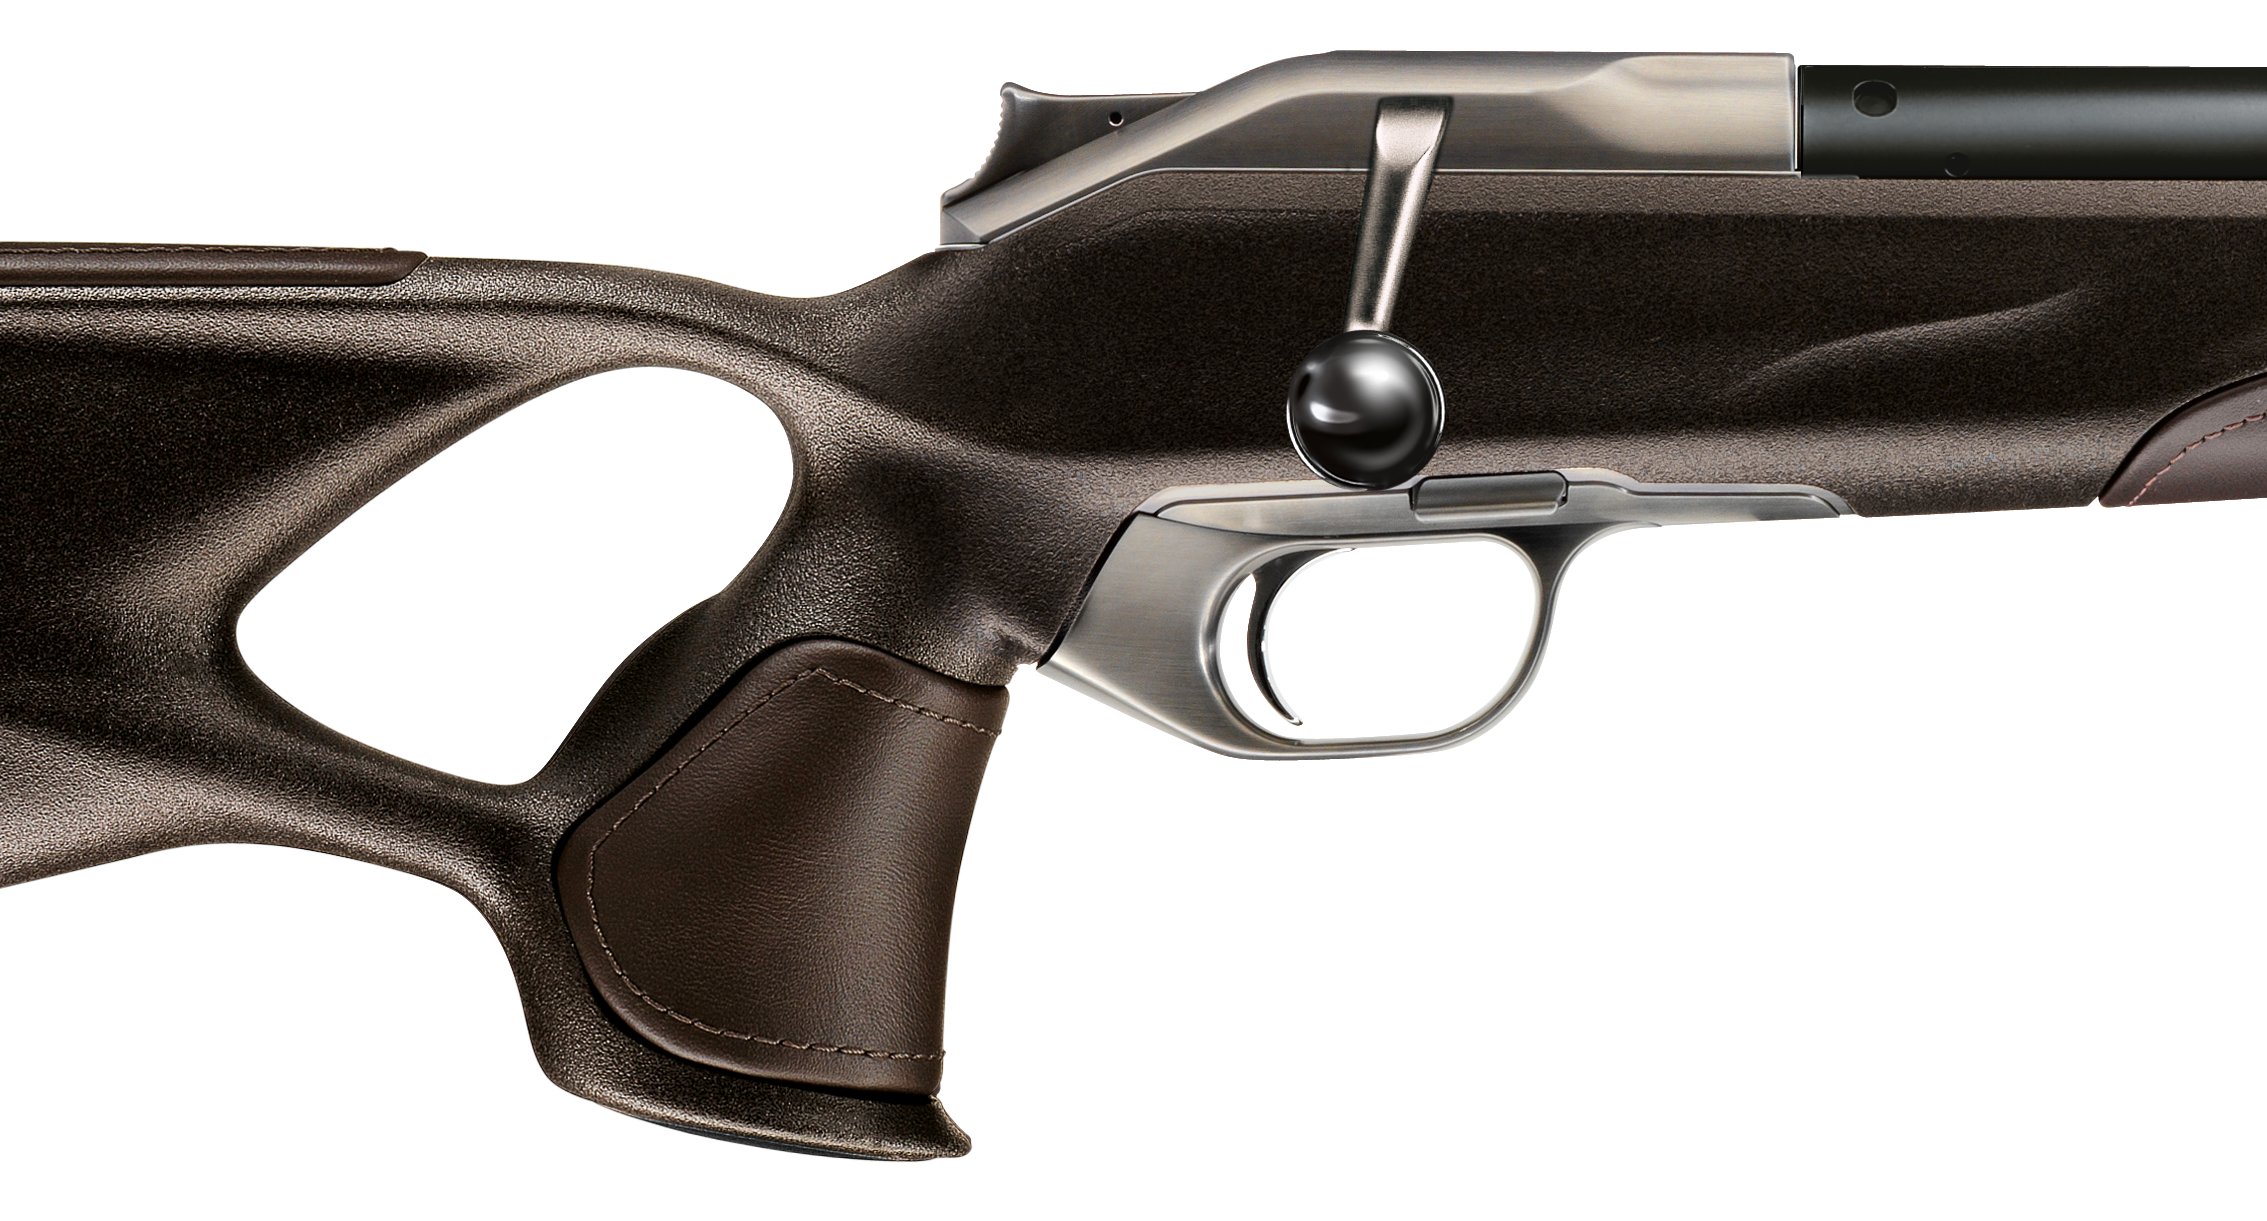 [Translate to Englisch:] Blaser Repetierbüchse R8 Ruthenium Systemkasten